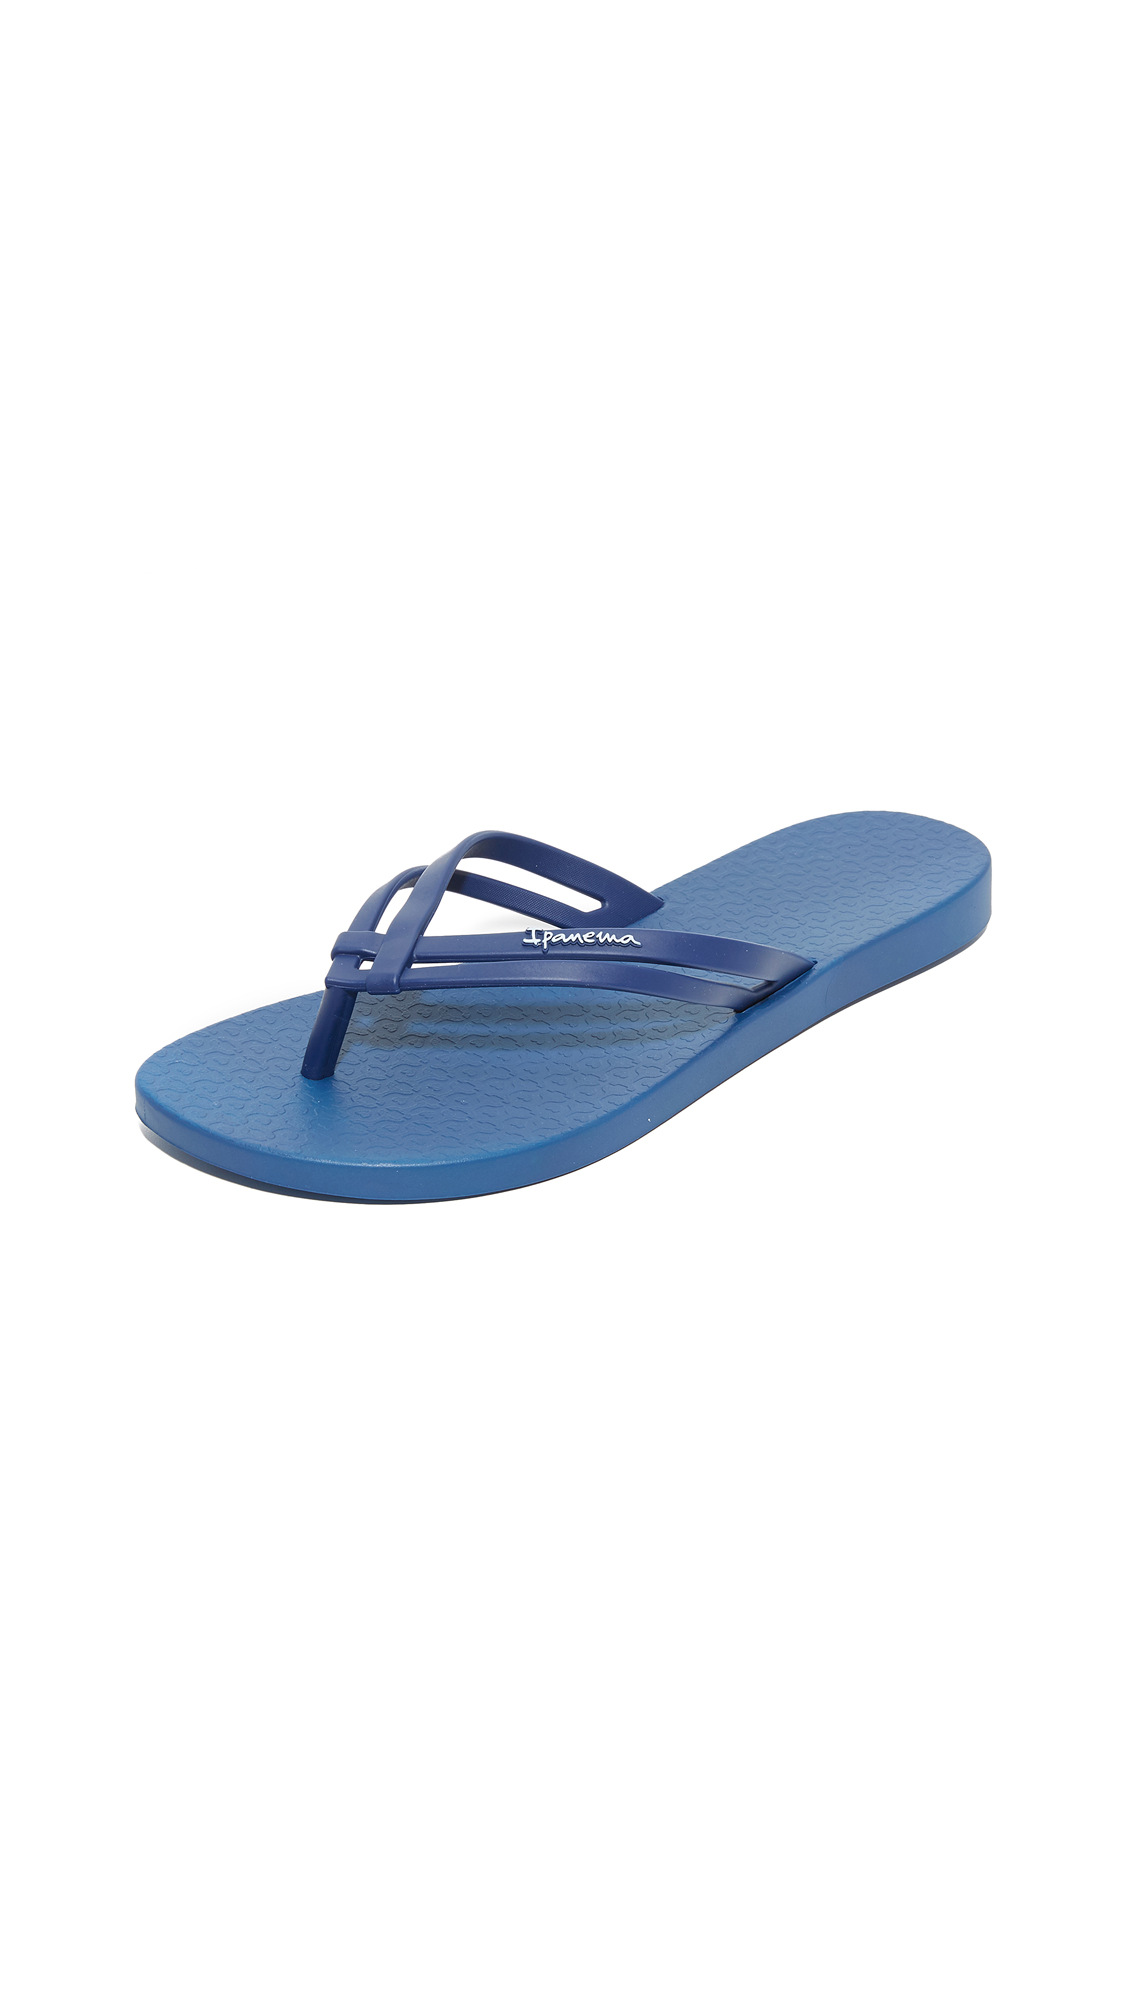 Ipanema Hashtag Flip Flops Shoes Online Shopping At Shoe Trove